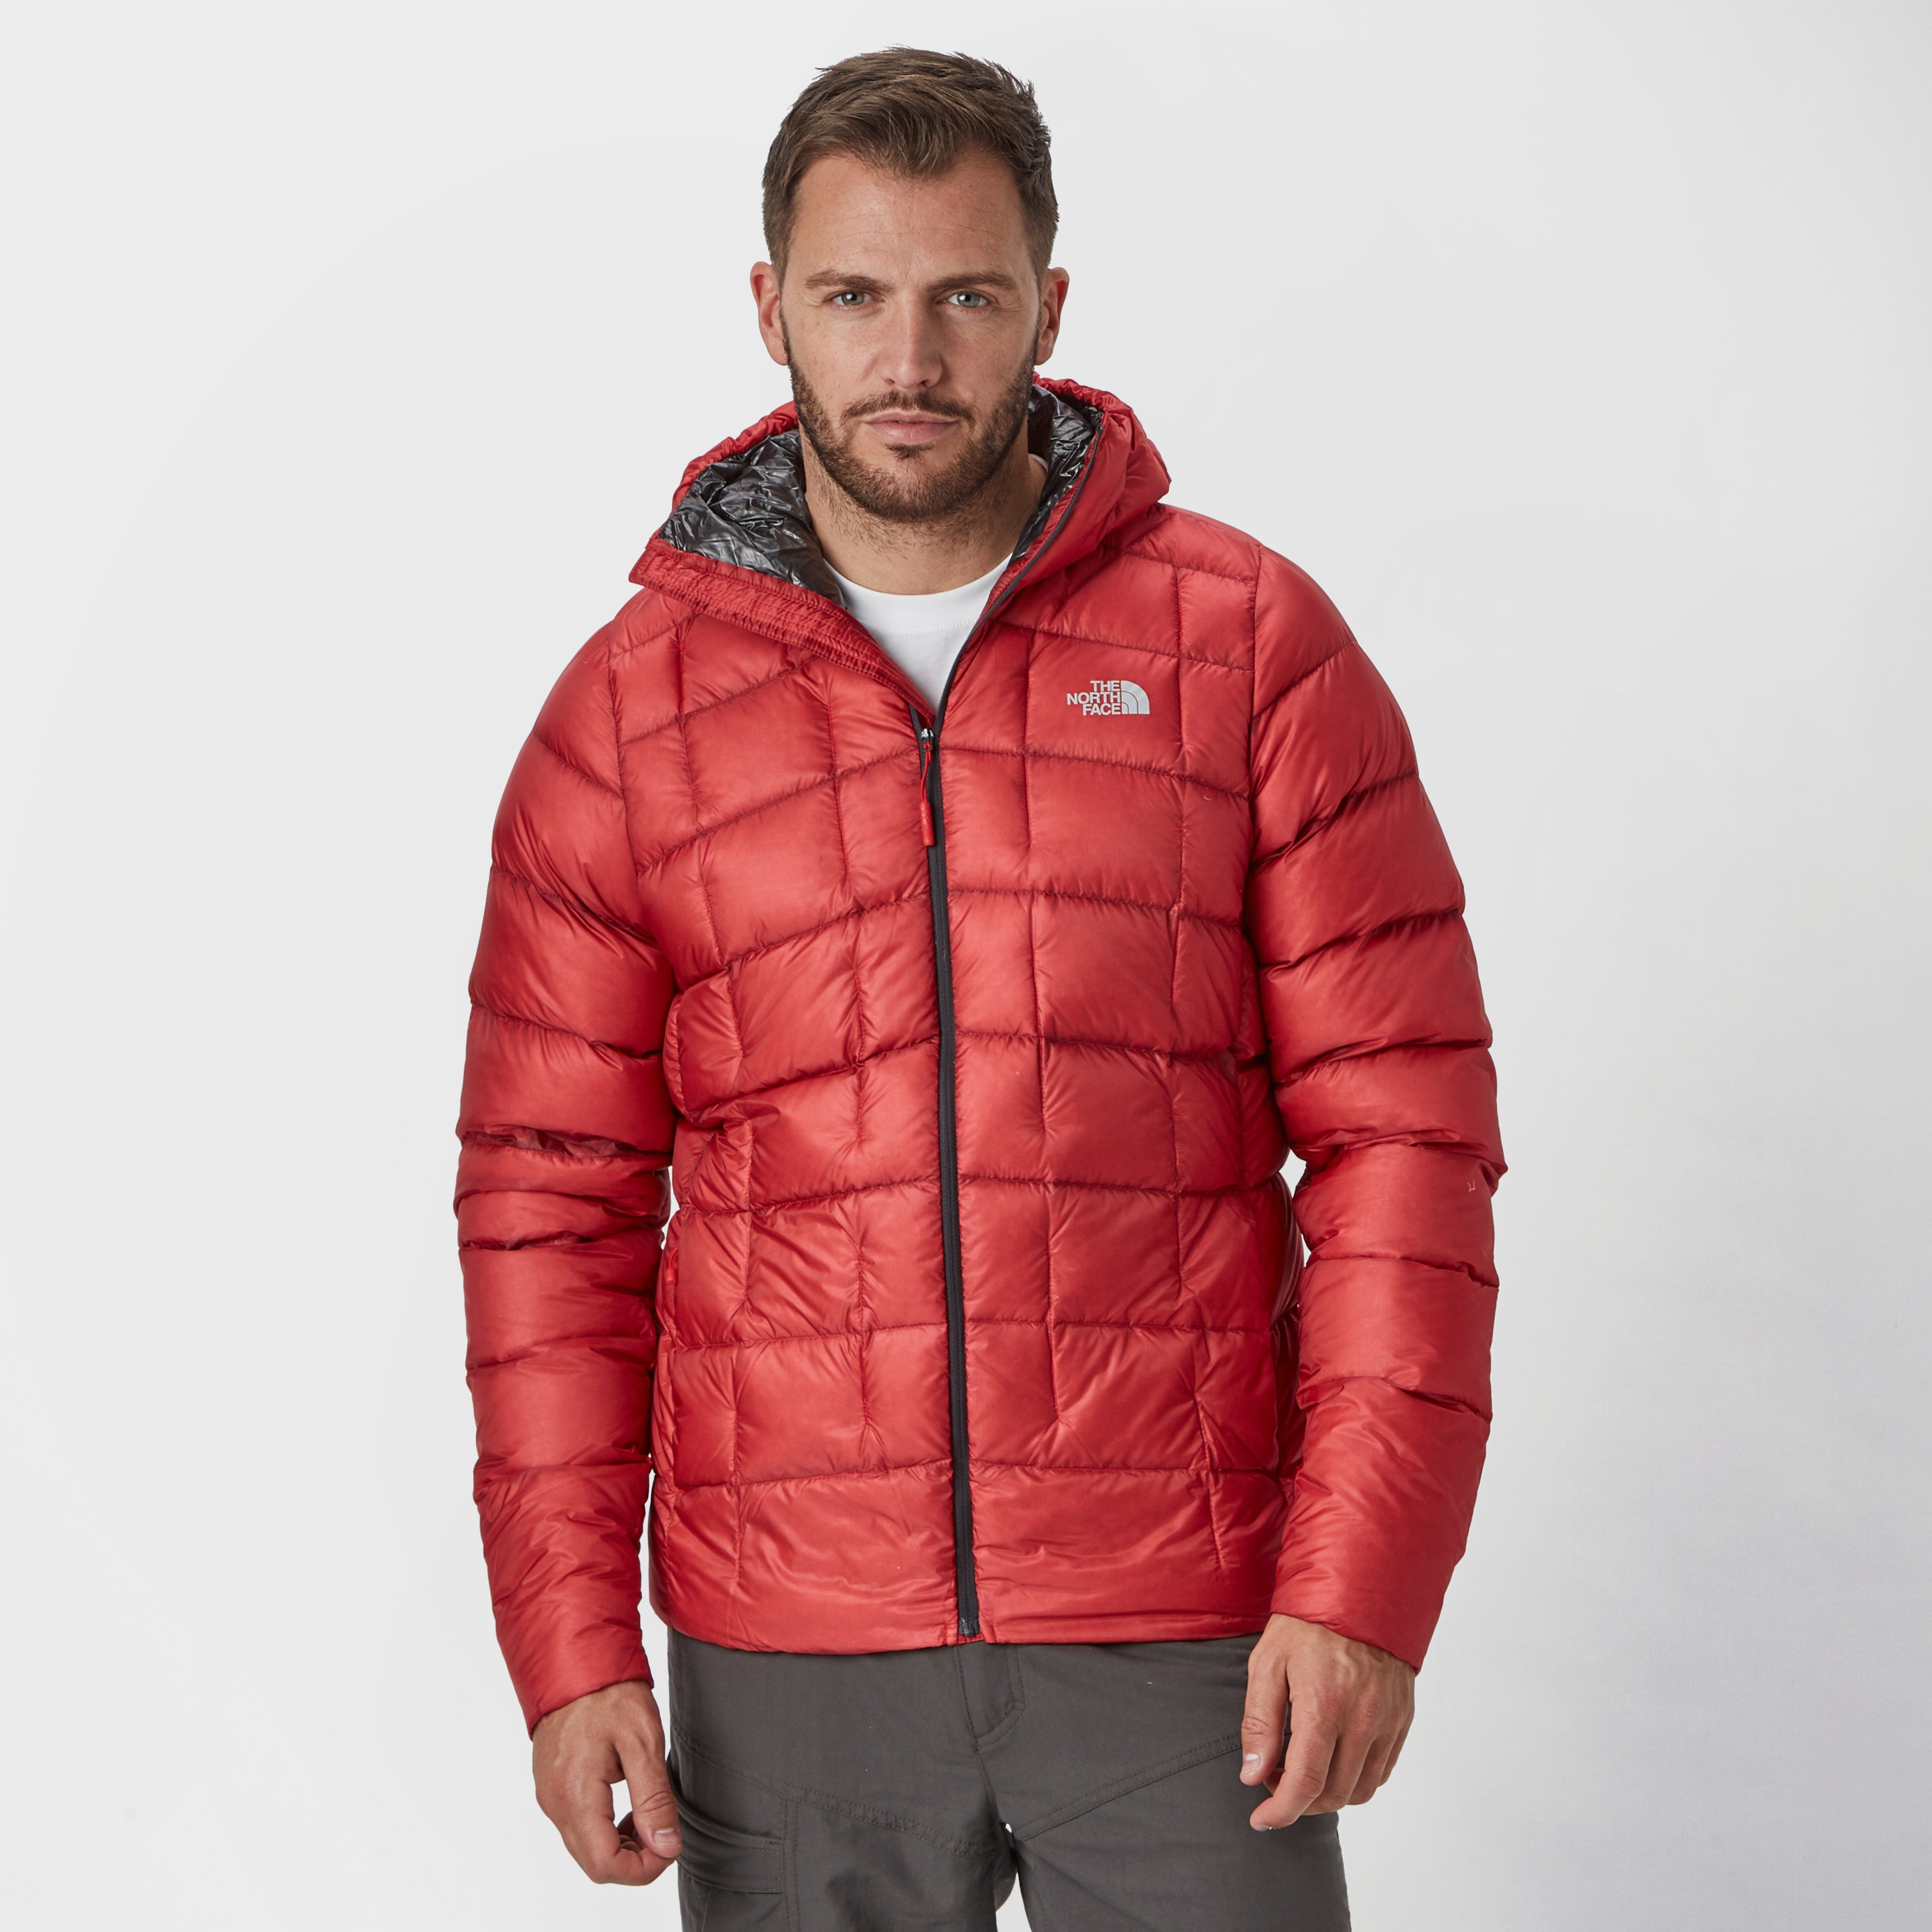 THE NORTH FACE Men's Supercinco Down Jacket